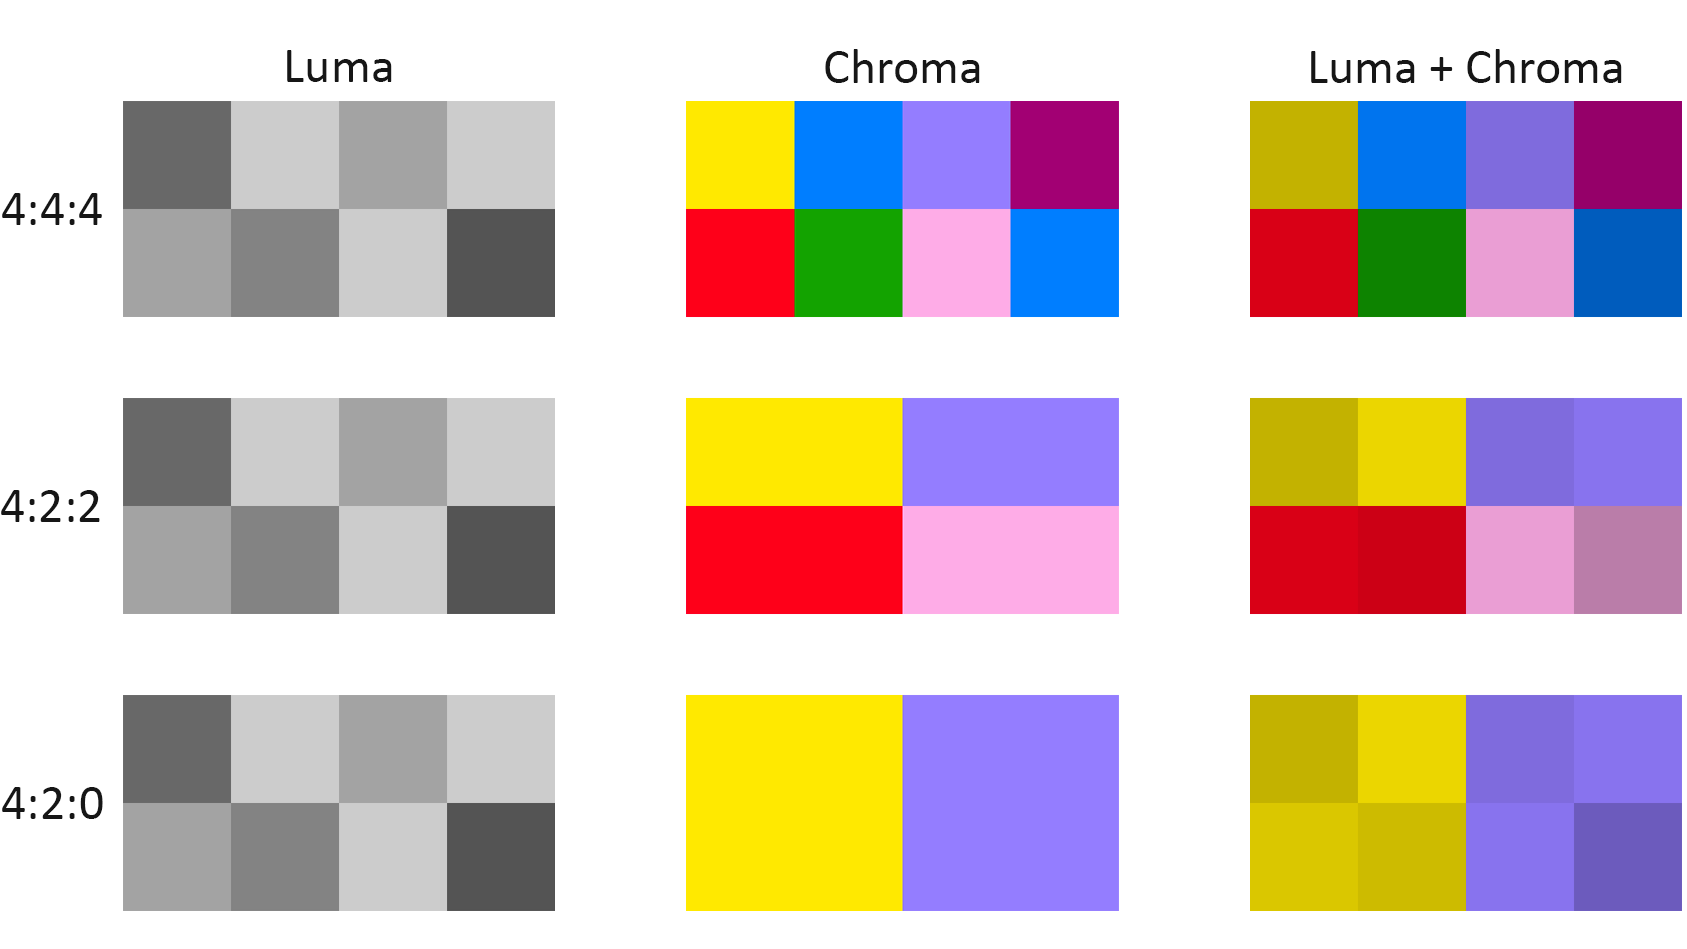 Chroma Subsampling: 4:4:4 vs 4:2:2 vs 4:2:0